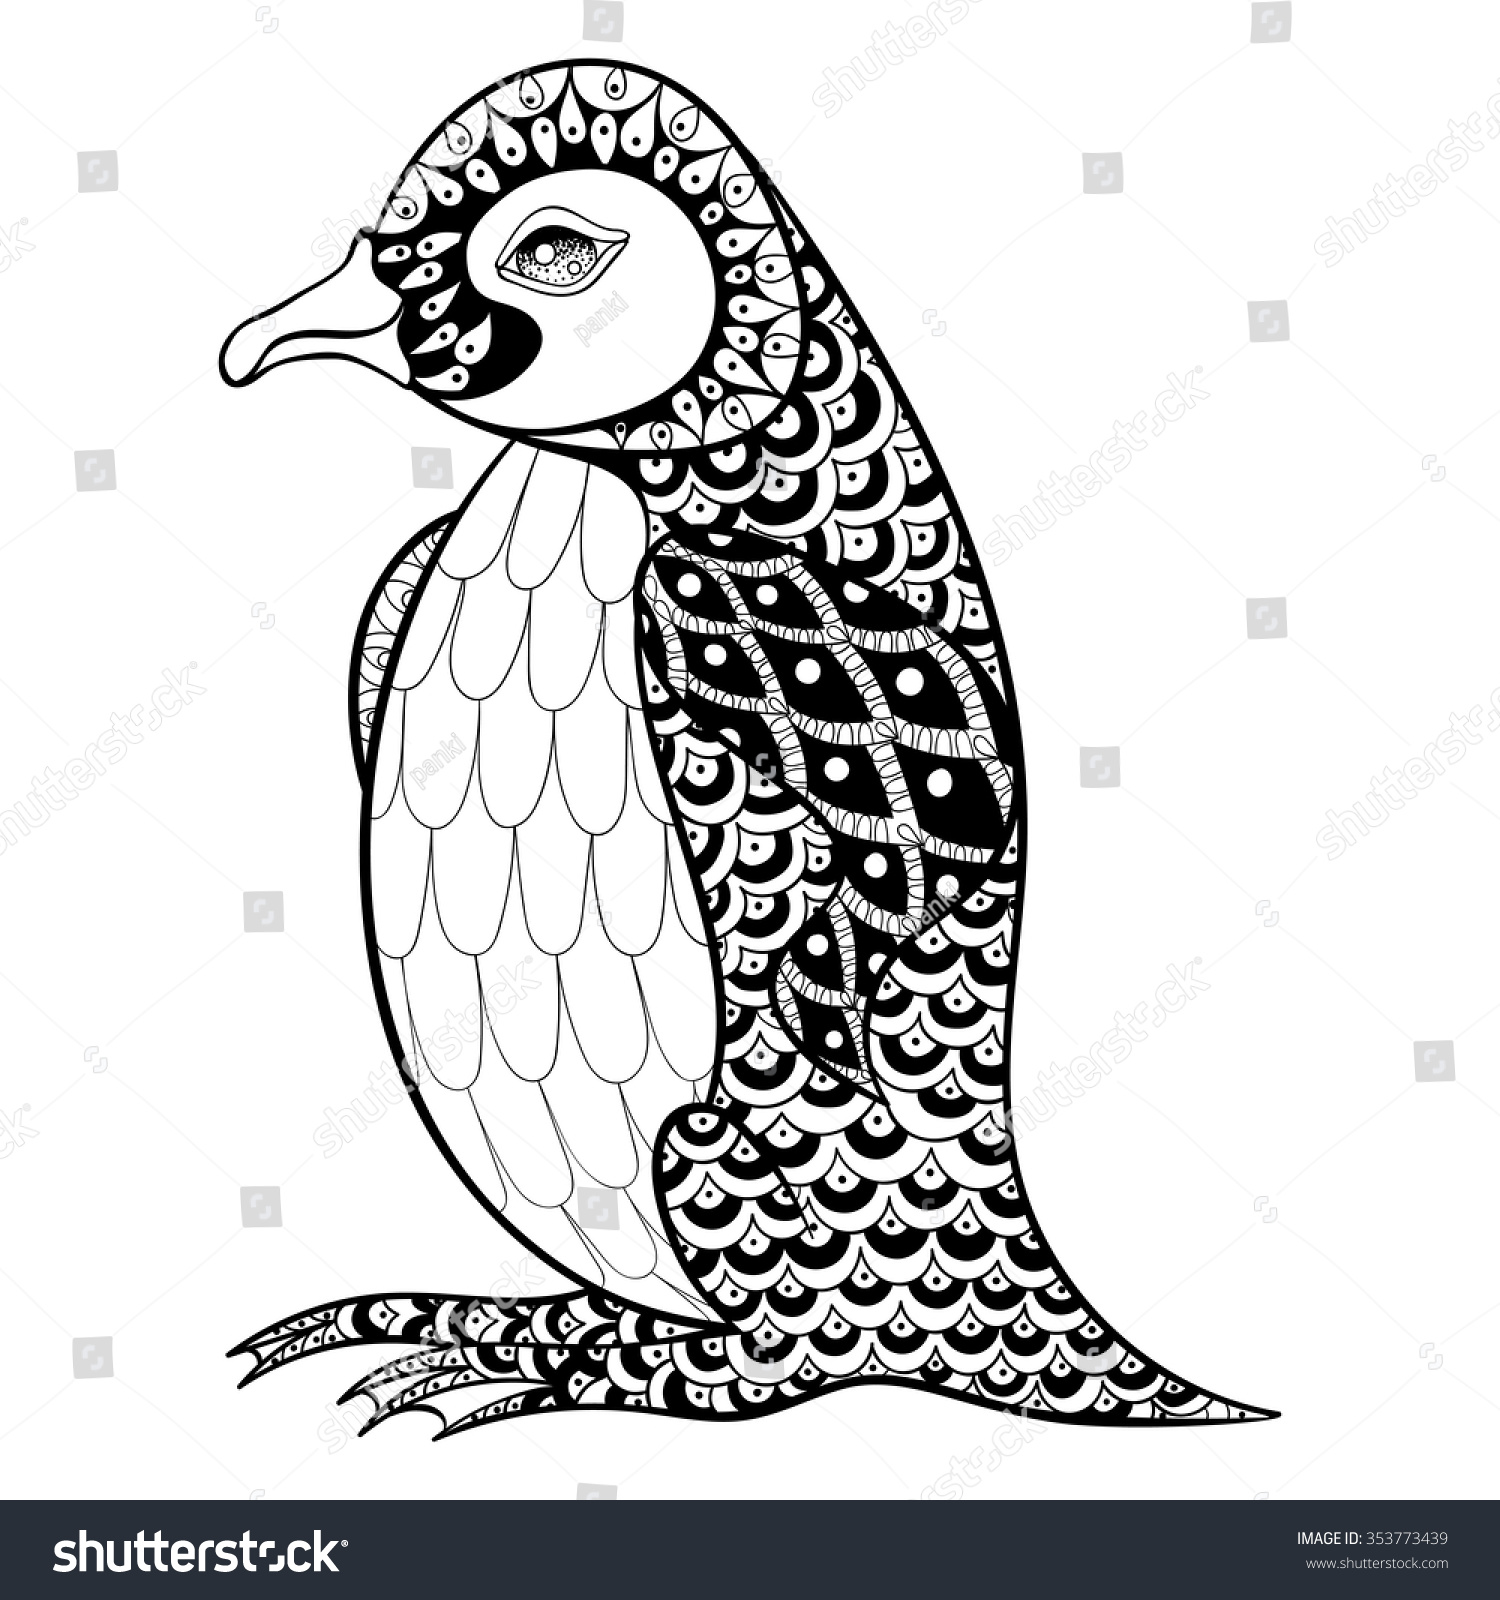 hand drawn artistically king penguin zentangle stock vector